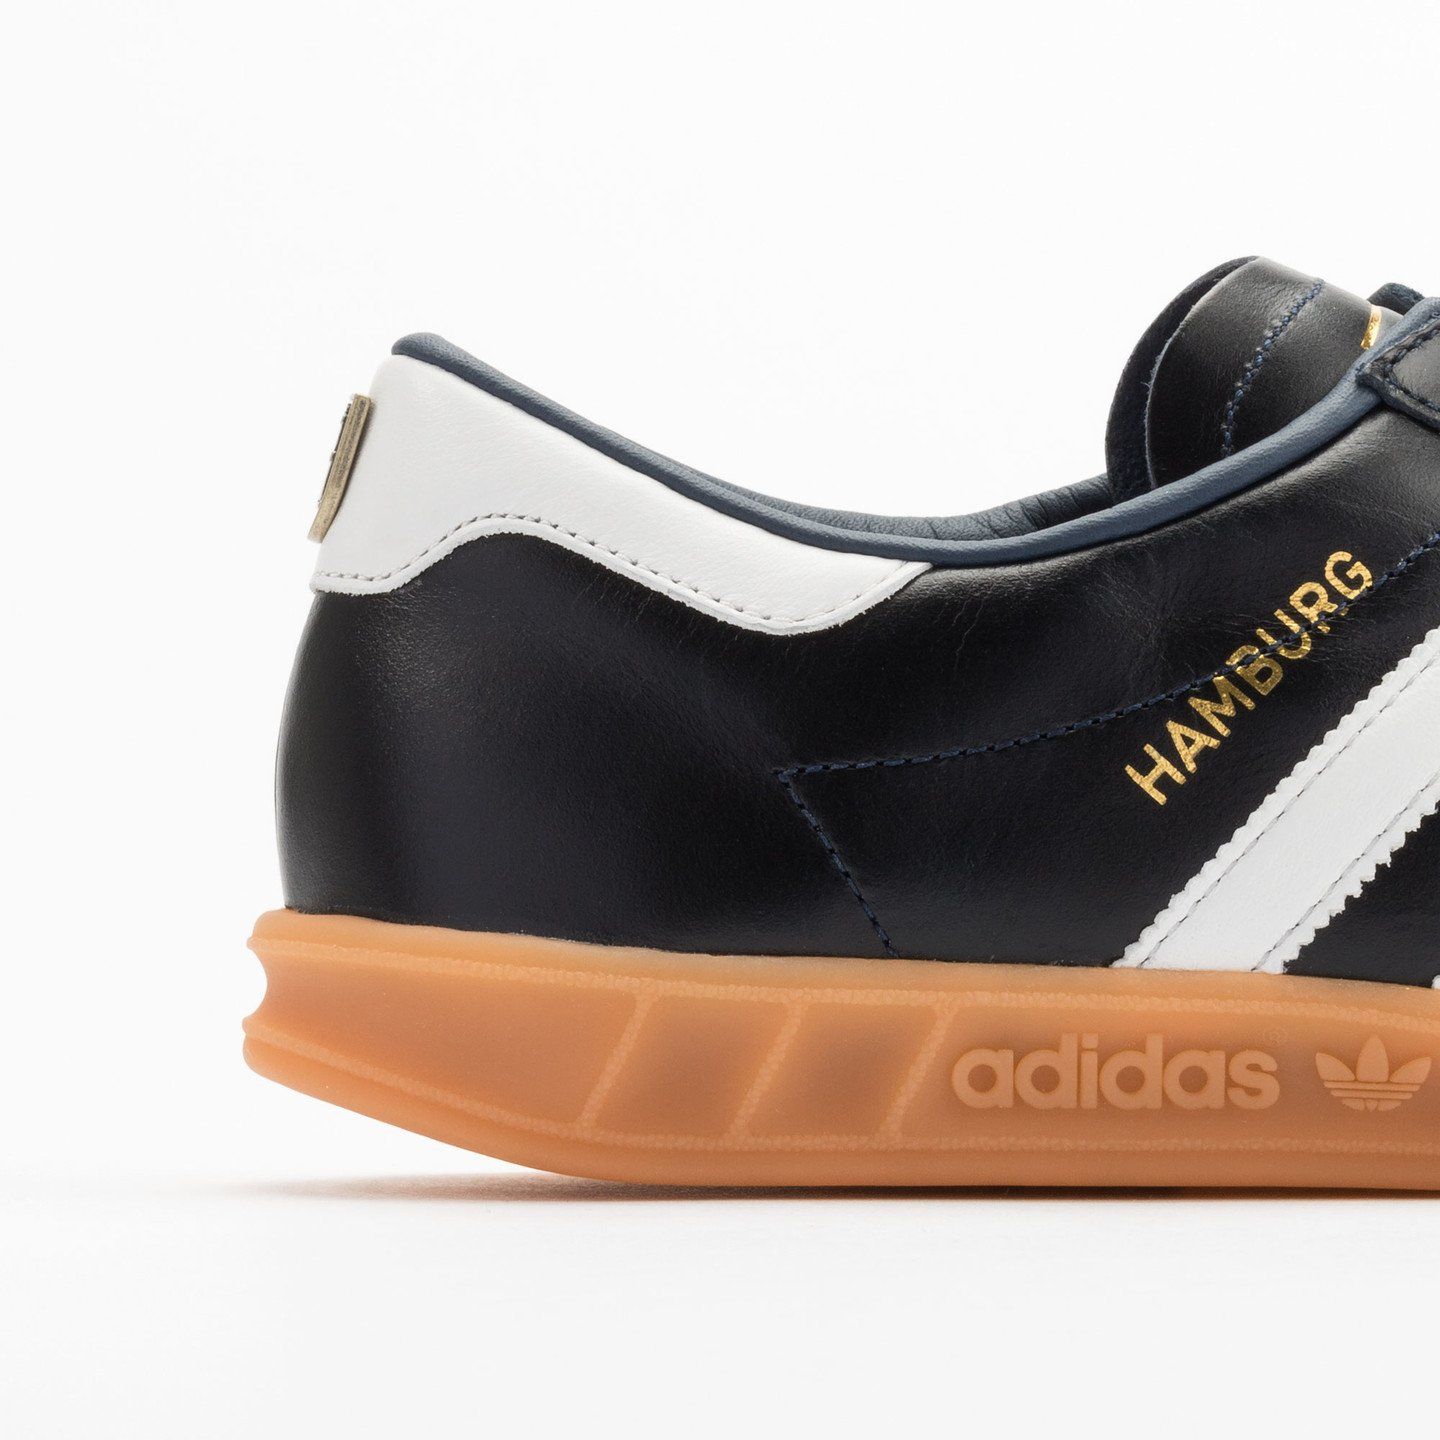 Adidas Hamburg - Made in Germany Navy / White / Gold / Gum S31602-46